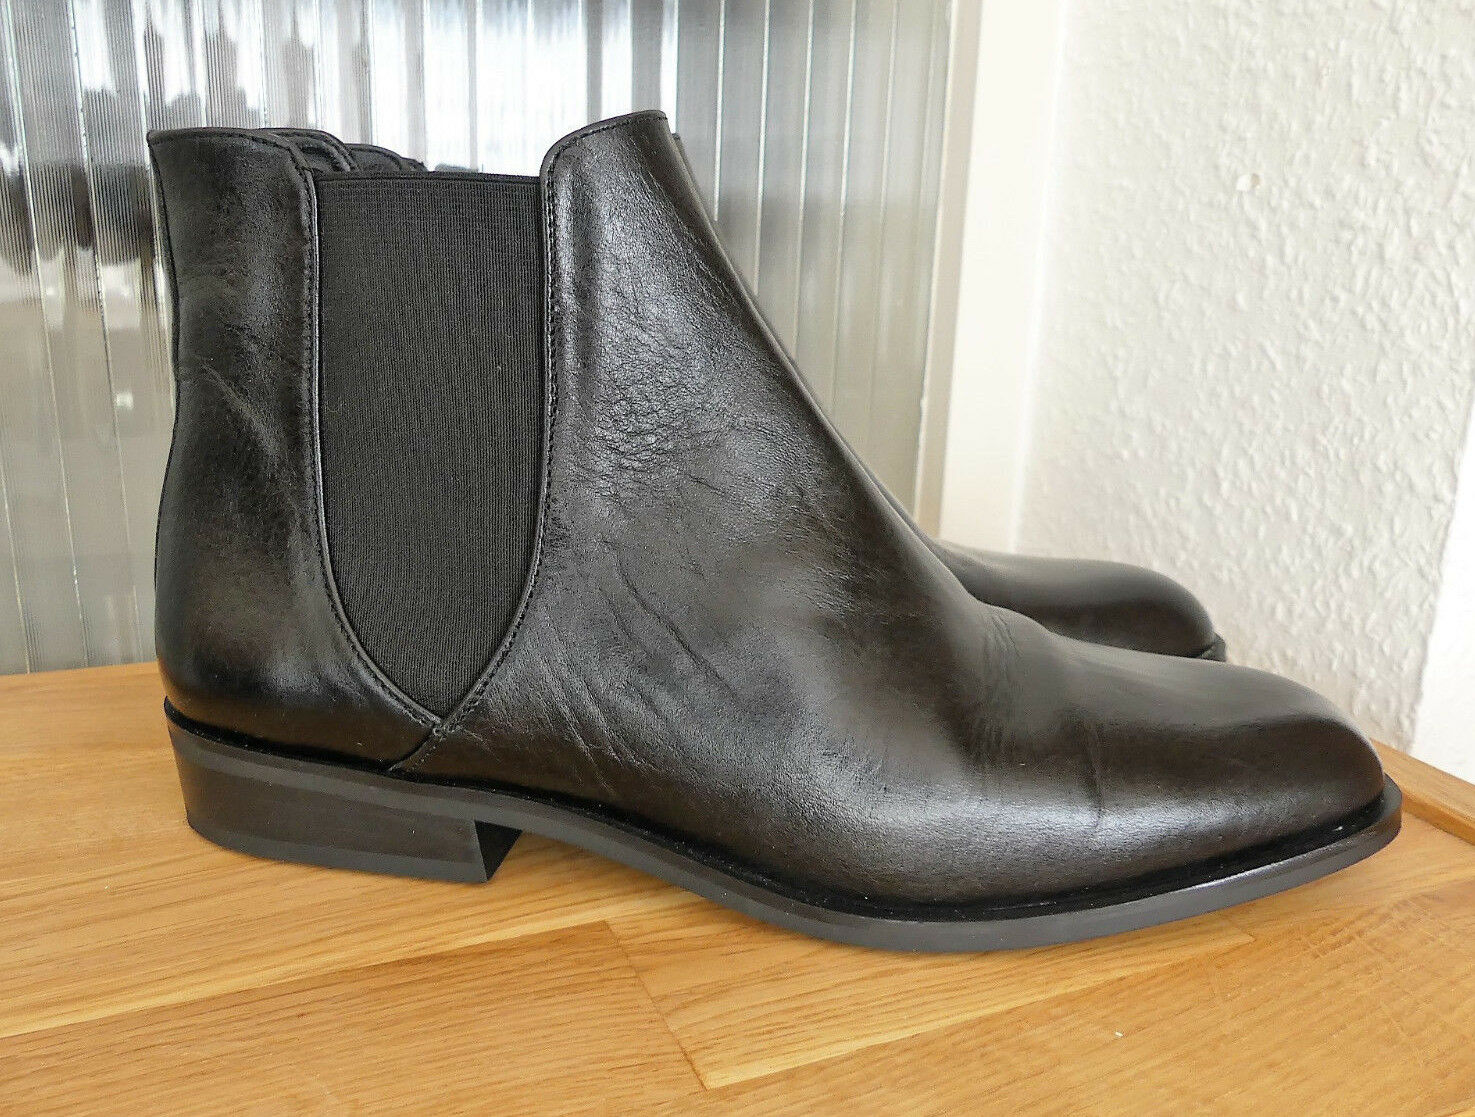 ZARA BASIC CHELSEA STIEFELETTE LEDER SCHWARZ ANKLE BOOTS LEATHER BLACK